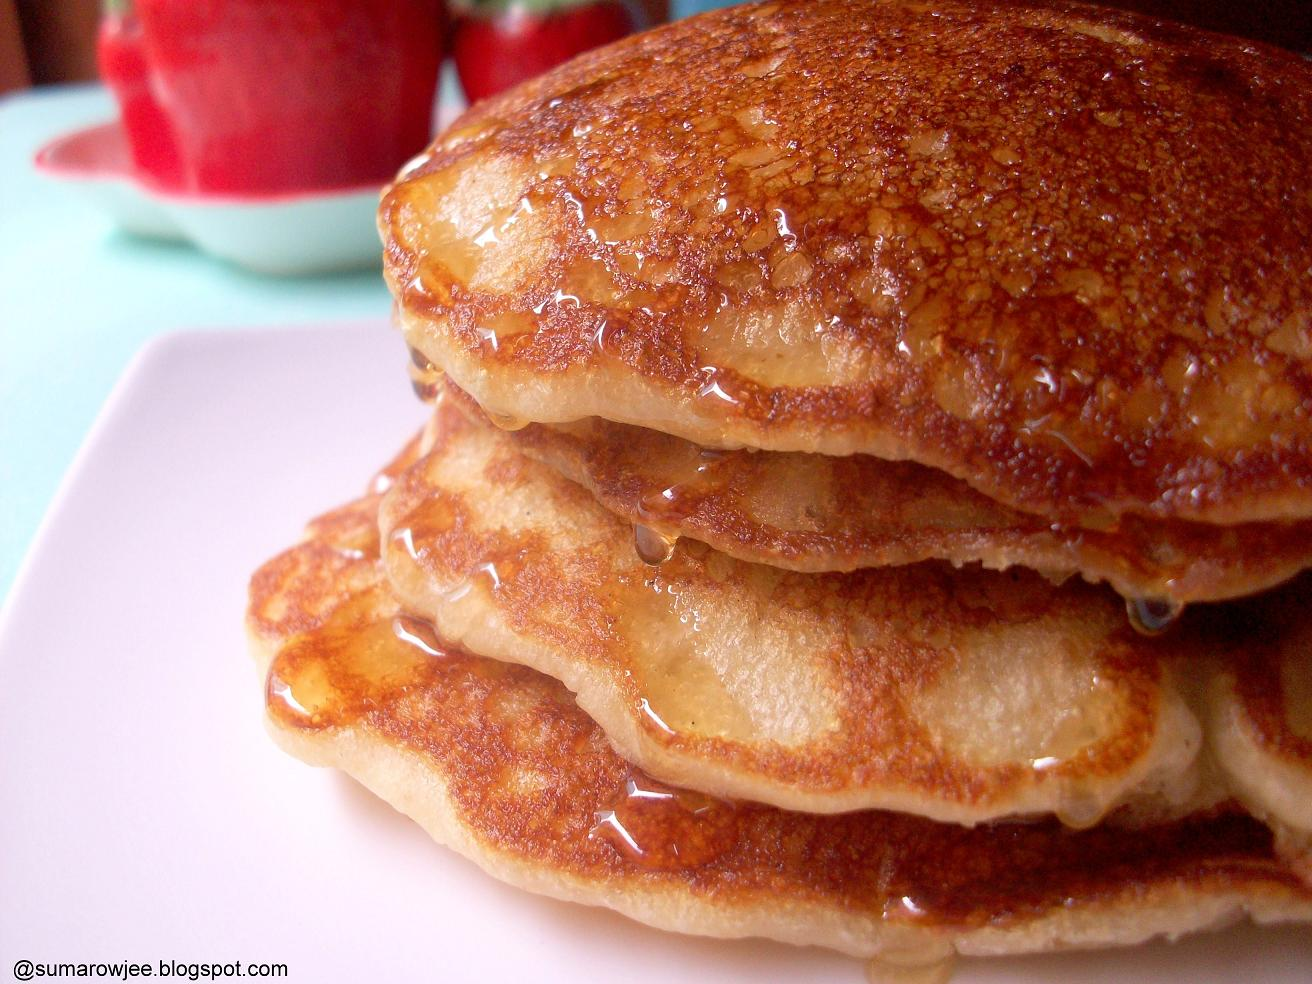 Cakes And More!: Eggfree Oatmeal Raisin Pancakes